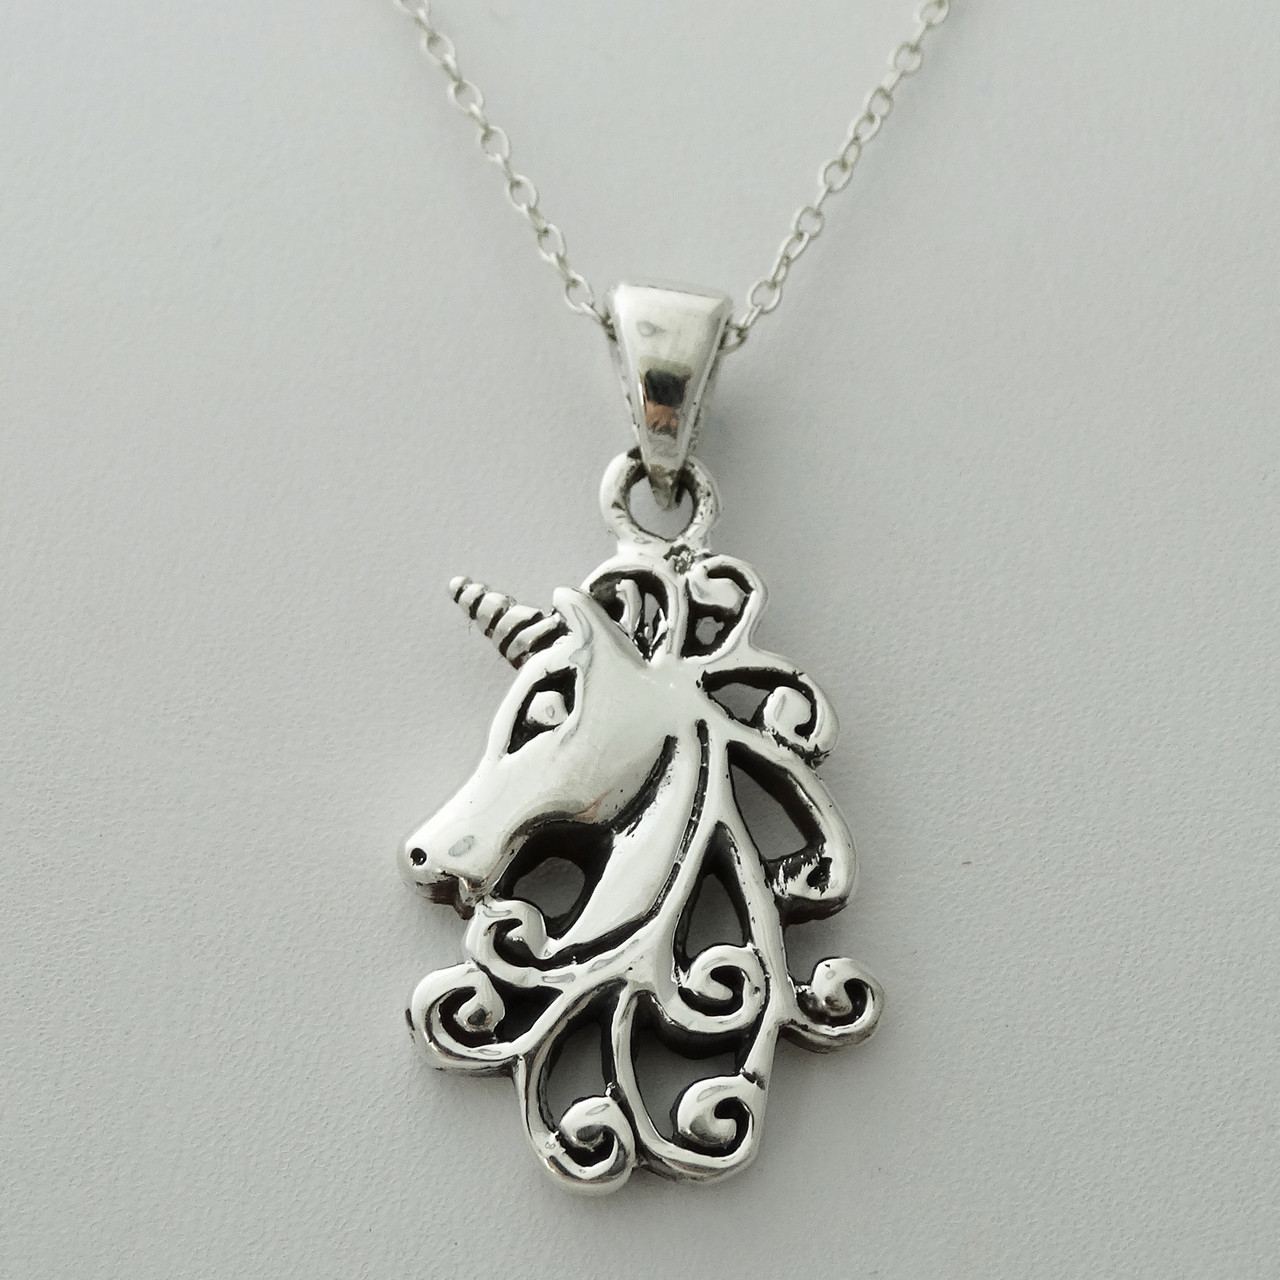 Sterling silver unicorn pendant charm on a sp necklace chain